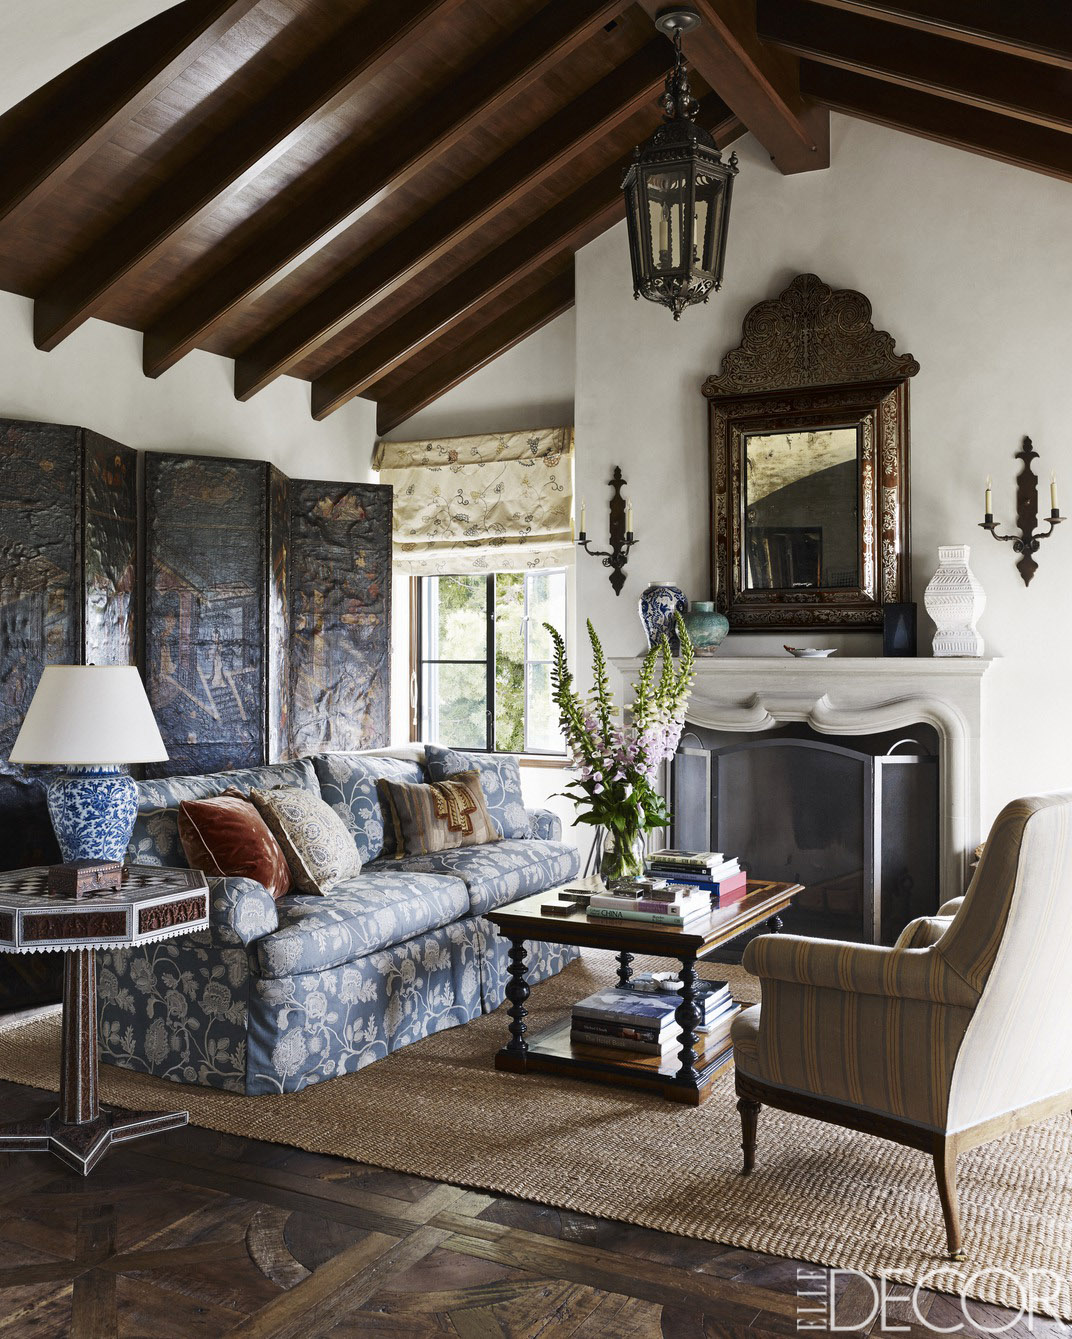 HOUSE TOUR: A Stunning California Home Inspired By The History Of ...